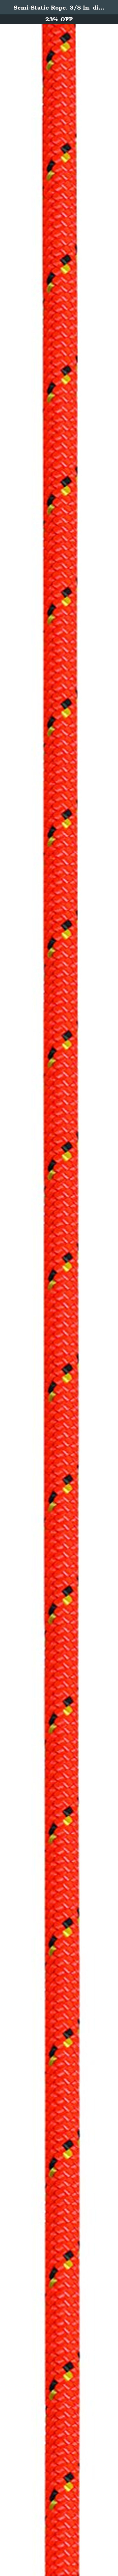 Semi-Static Rope, 3/8 In. dia., 150 ft. L. ' Semi-Static Rope, Rope Material Polyester Sheath, Rope Construction Vector, Rope Dia. 3/8 In., Length 150 ft., Working Load Limit 400 lb., Tensile Strength 4000 lb., Orange, Standards NFPA E '.